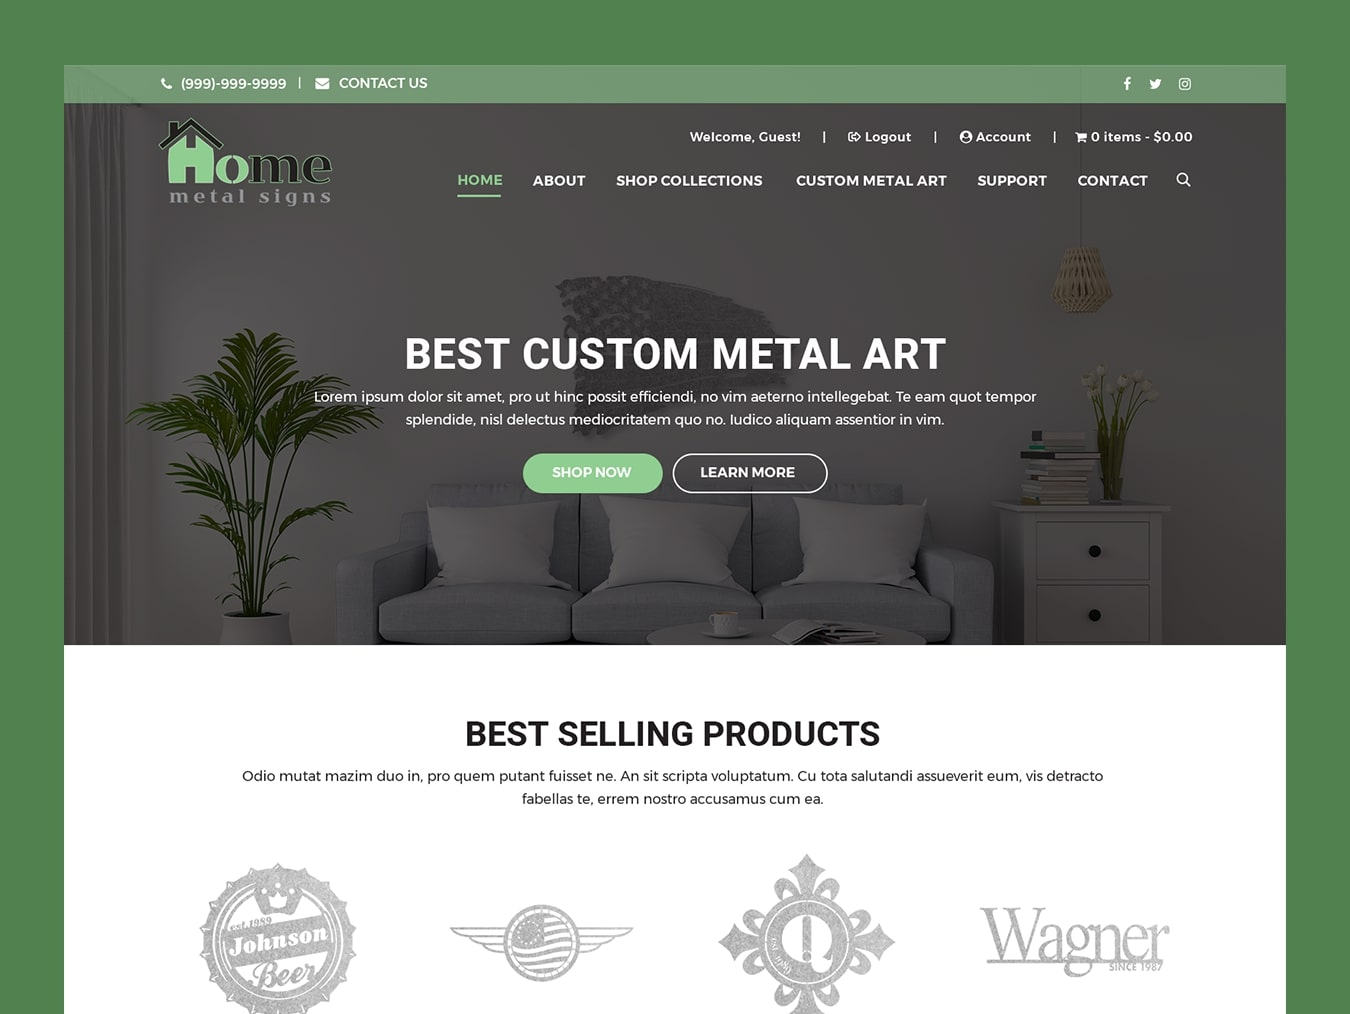 home-metal-signs-web-design-featured